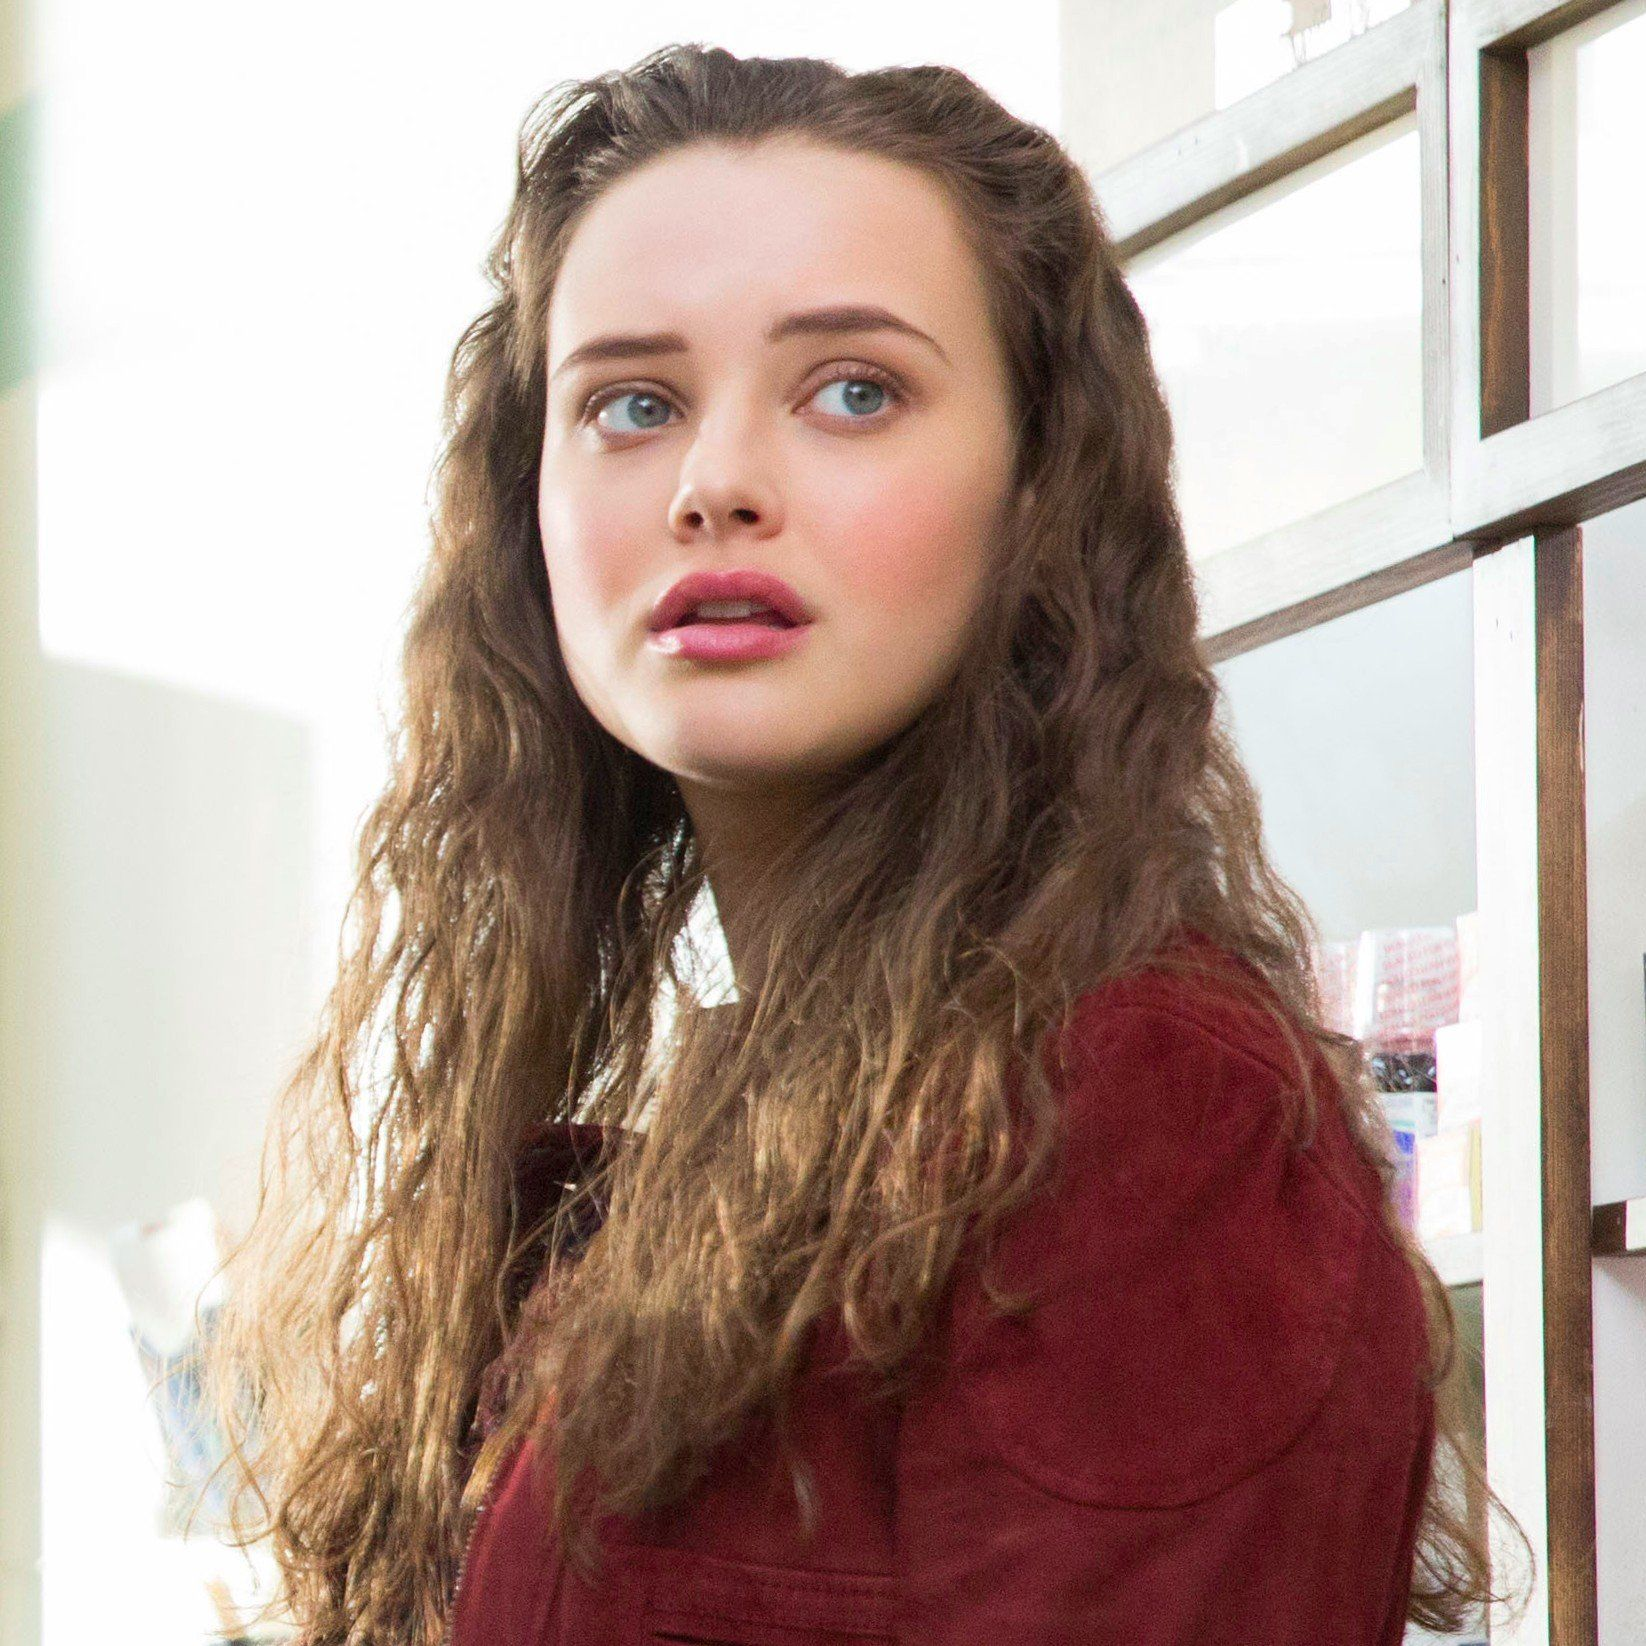 Nike jacket from 13 reasons why - 13 Reasons Why Hannah Baker And Katherine Langford Image Katherine Langford Pinterest Beautiful Dr Who And Sisters